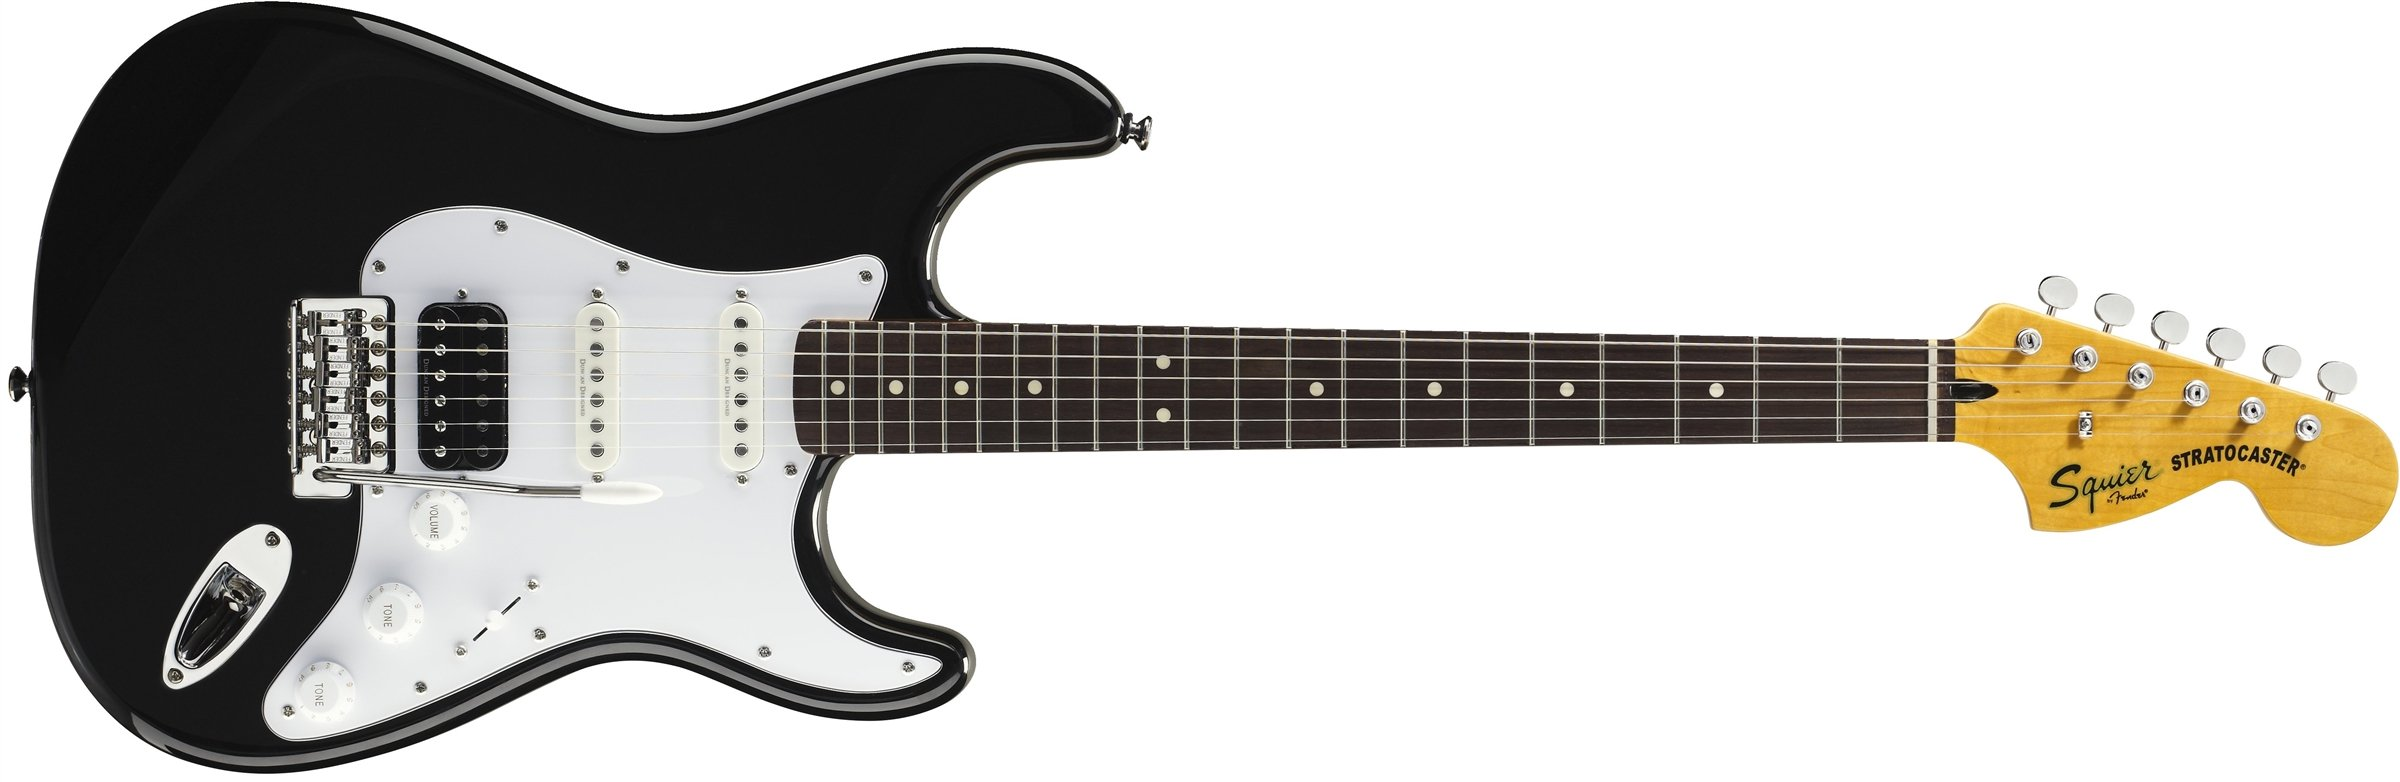 Cheap Squier by Fender Vintage Modified Stratocaster Electric Guitar HSS - Black - Rosewood Fingerboard Black Friday & Cyber Monday 2019